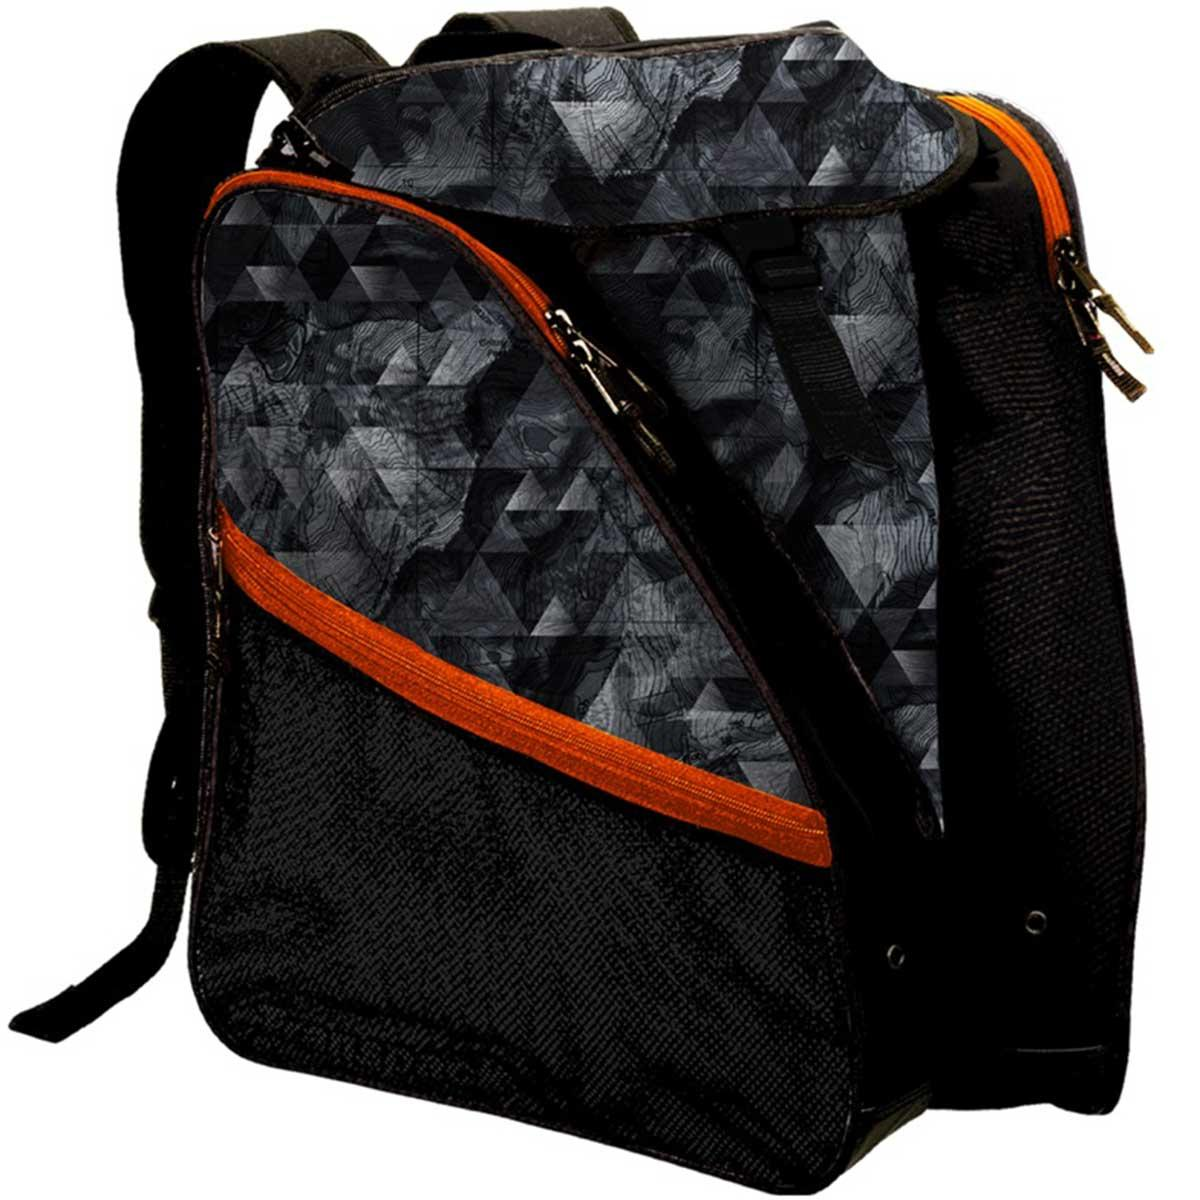 Transpack XT1 Classic Print Boot Bag in Grey Topo